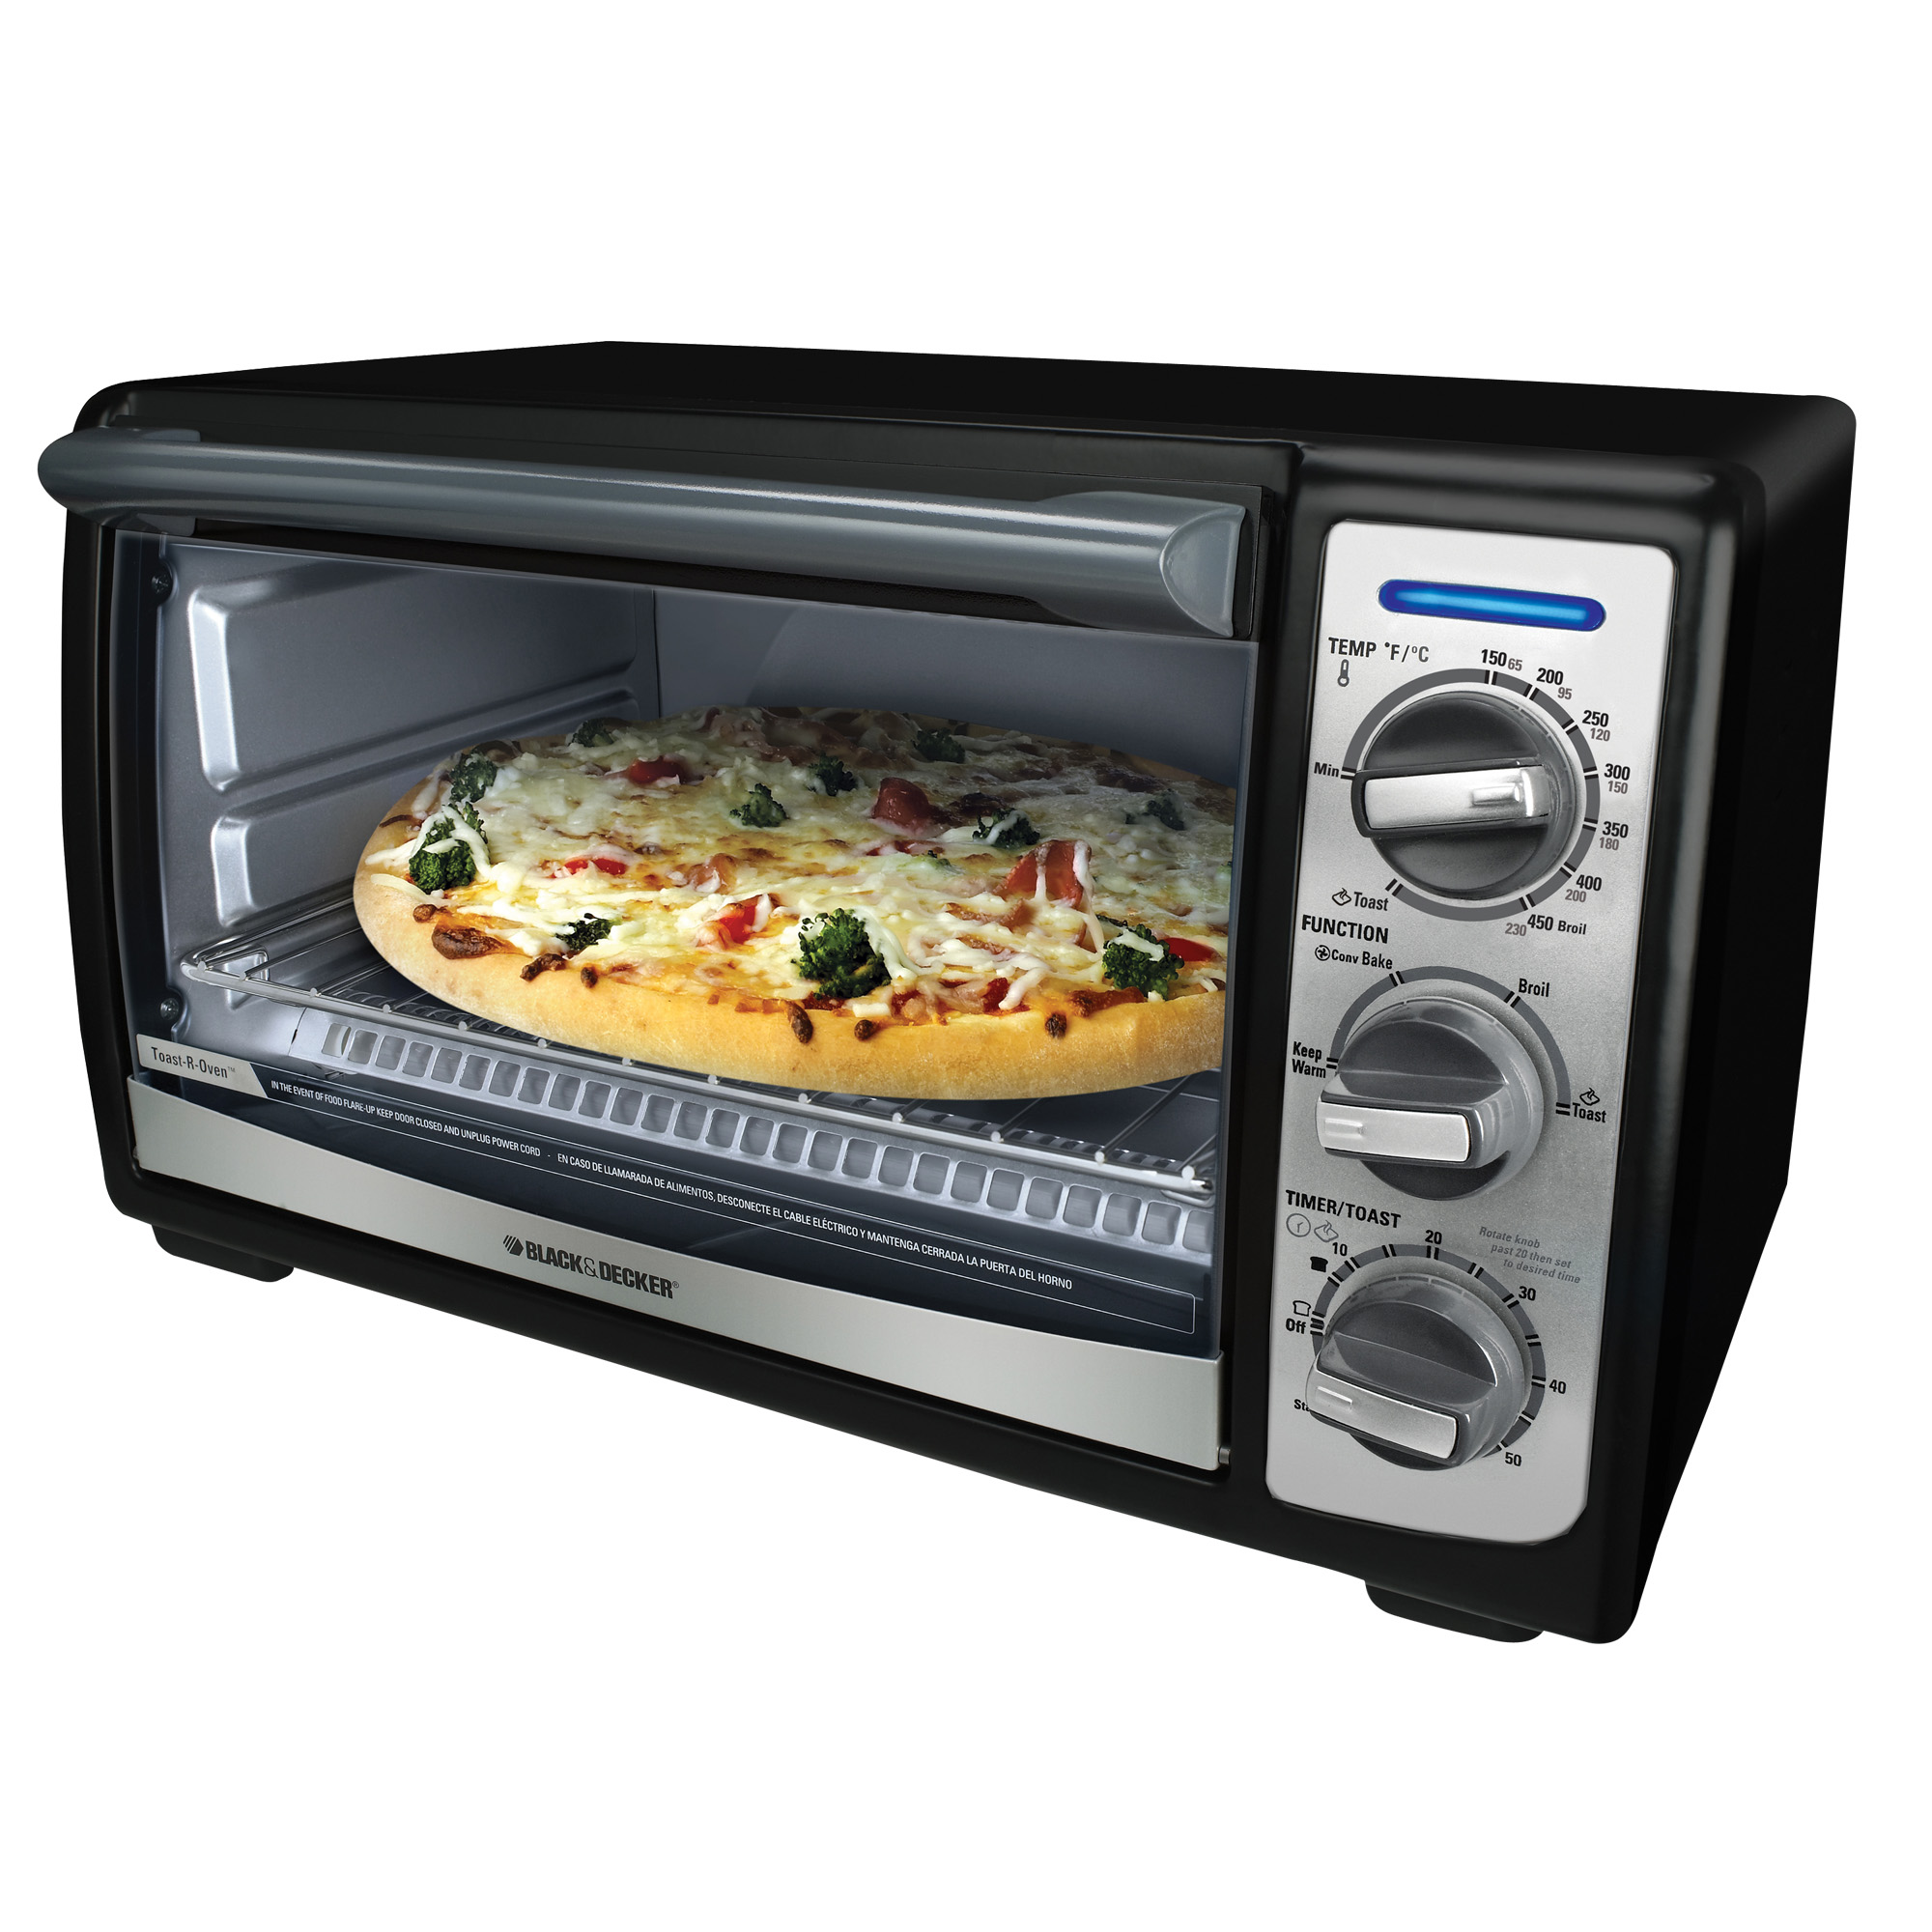 TRO4075B Toast-R-Oven by Black and Decker